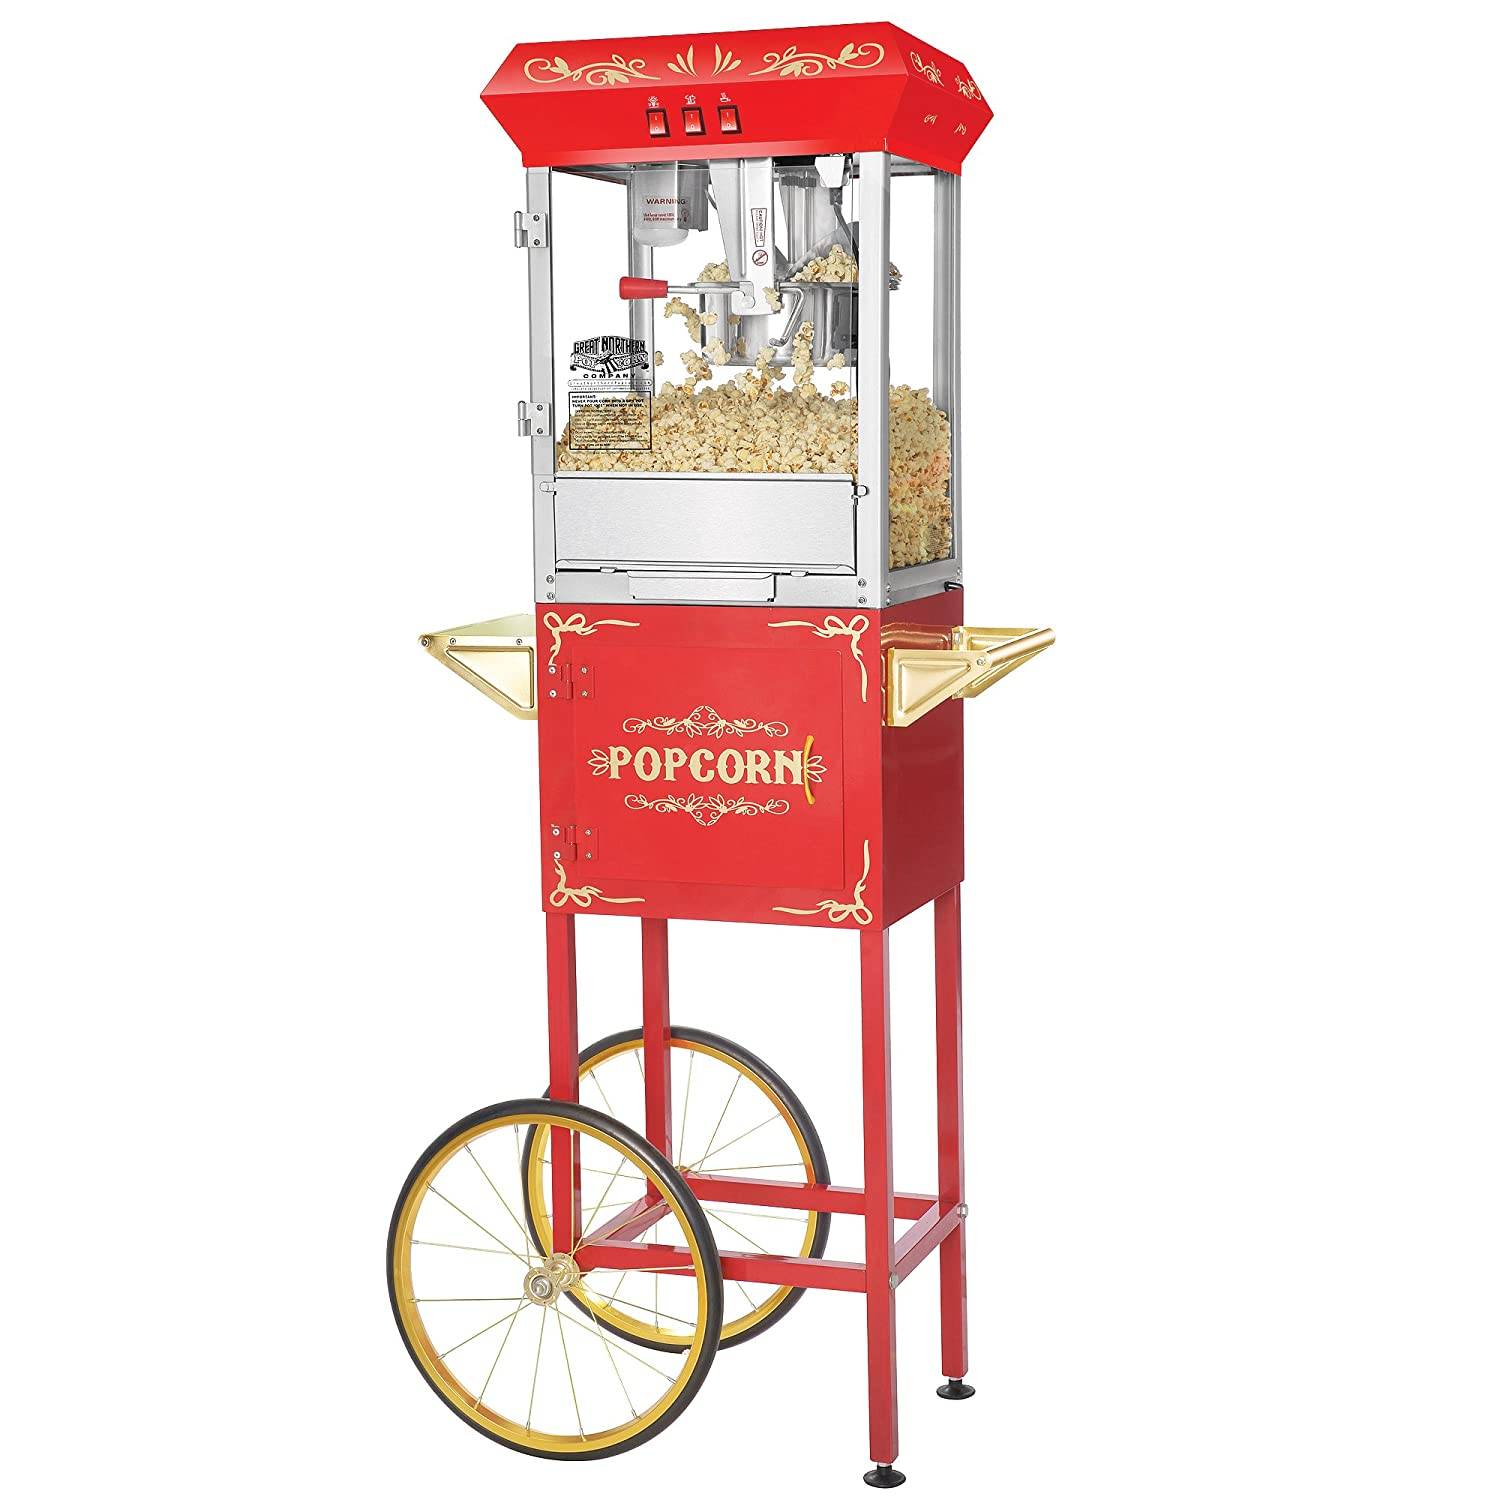 81MBrylxQcL._SL1500_ amazon com great northern popcorn 6097 8 oz foundation red full gold medal popcorn machine wiring diagram at suagrazia.org